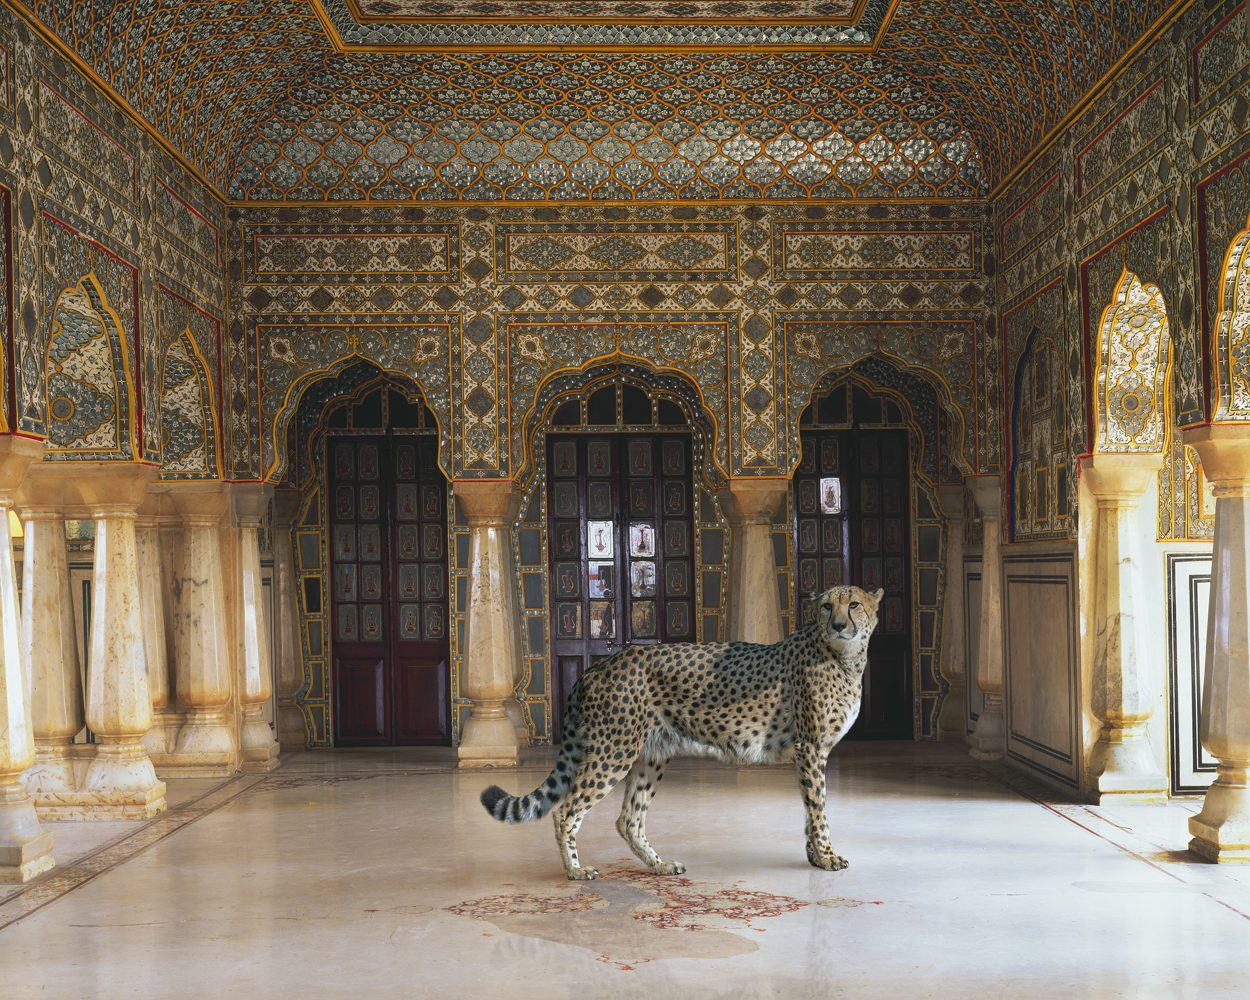 https://i0.wp.com/karenknorr.com/wp-content/uploads/2014/07/5The-Return-of-the-Hunter-1250x1000.jpg